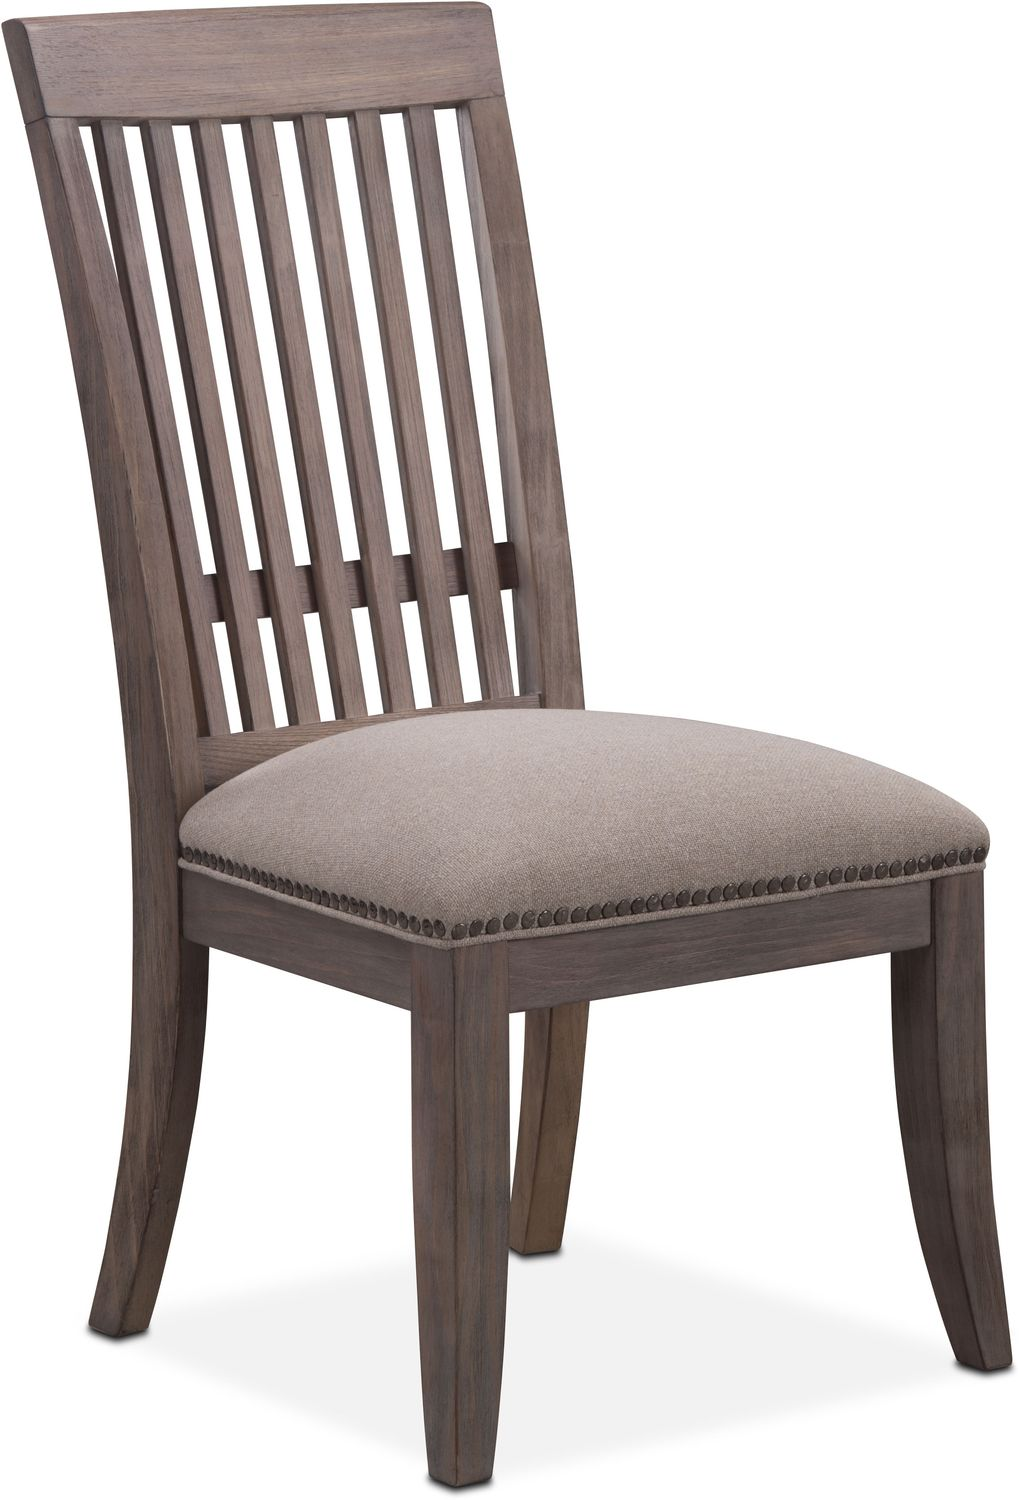 Slatted Back Chairs ~ Lancaster slat back chair parchment value city